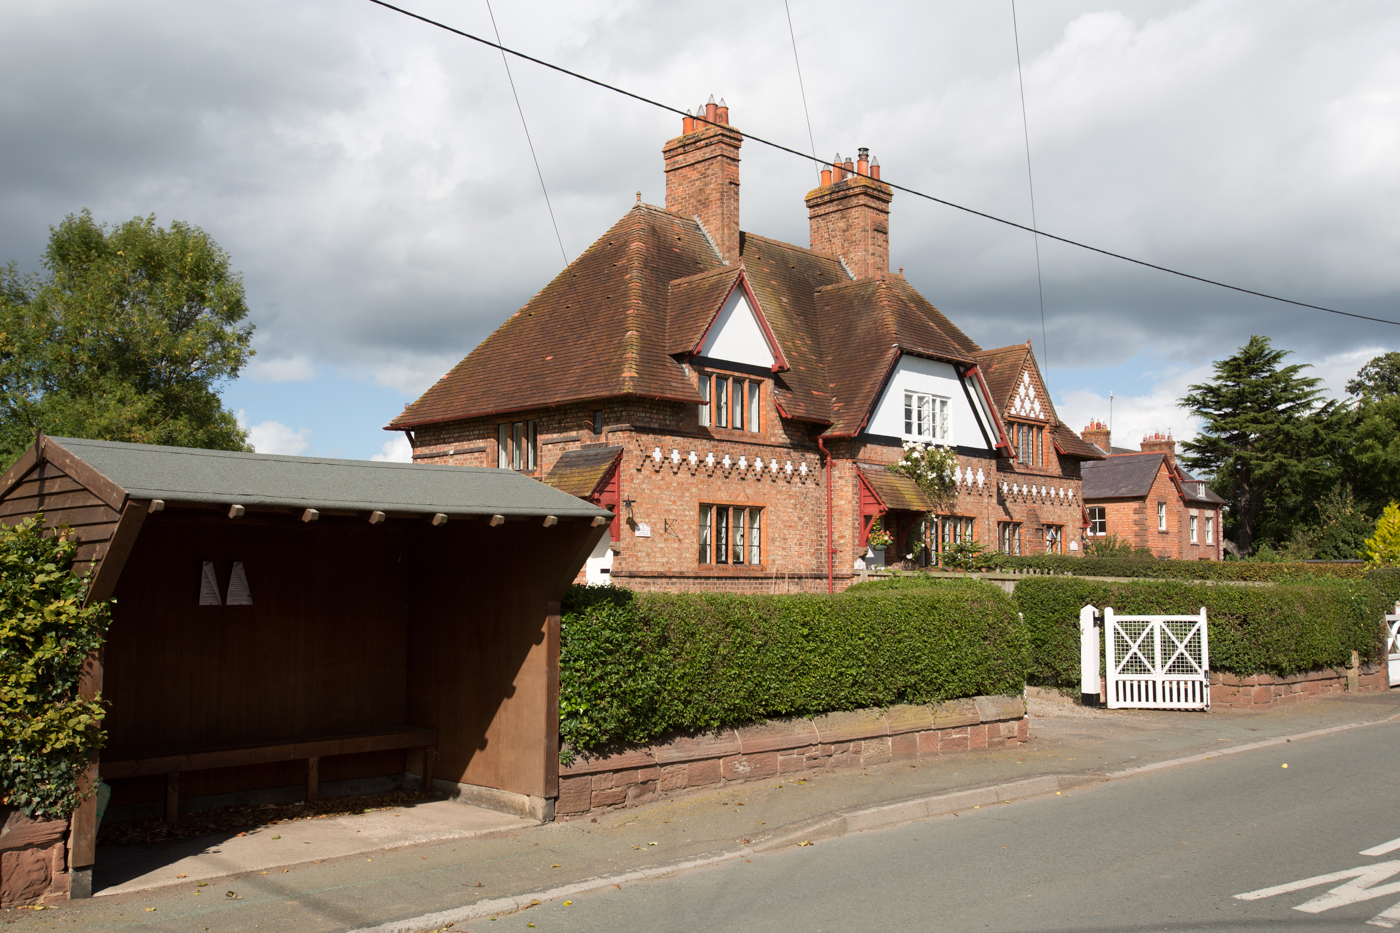 Village of Saighton, Cheshire, England. Picturesque view of houses on Saighton's, Saighton Lane. The majority of the properties in the village belong to the Duke of Westminster Estate.